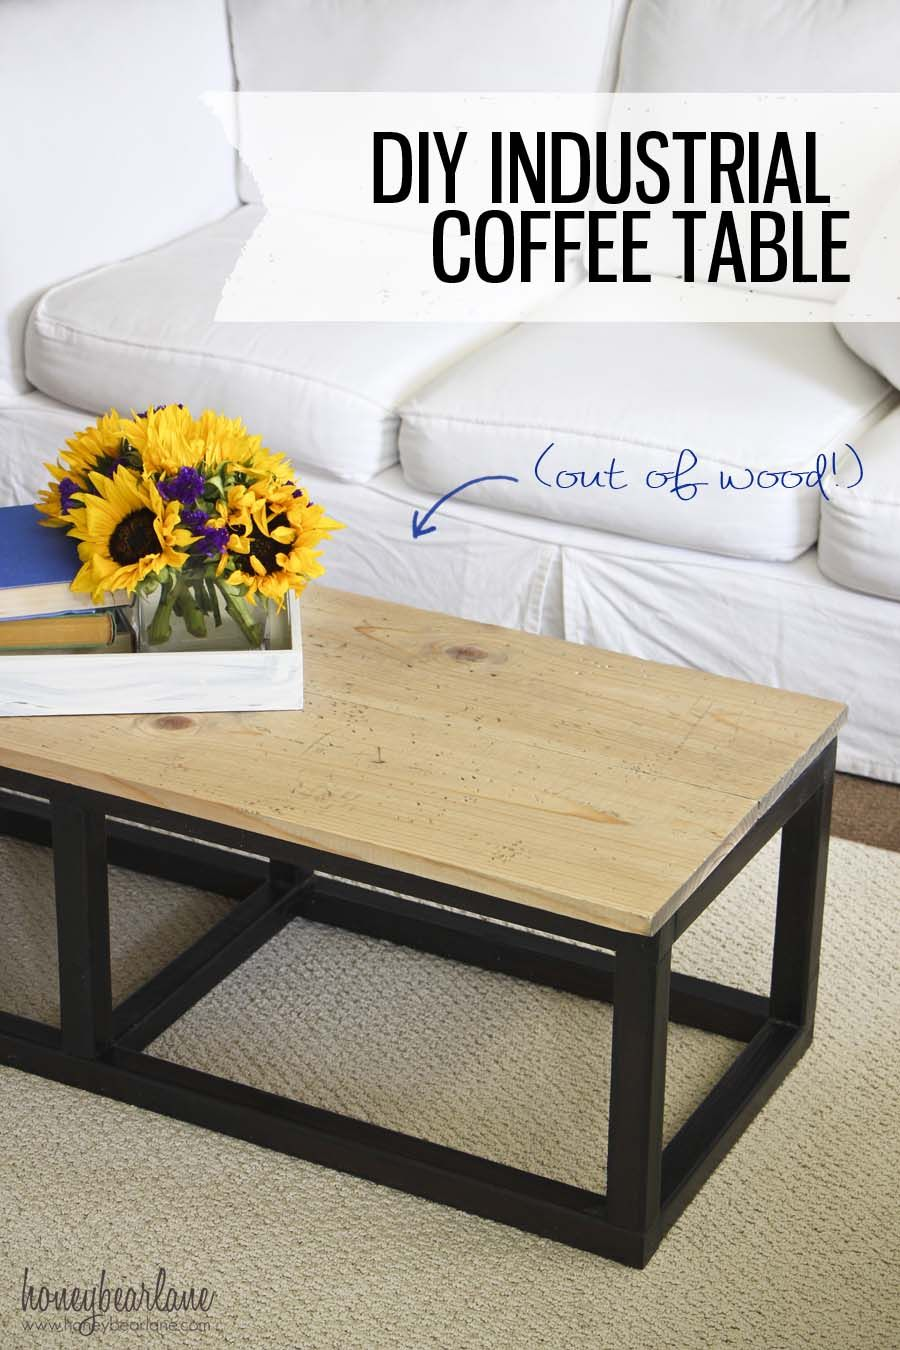 Diy industrial coffee table industrial coffee and diy coffee table diy industrial coffee table geotapseo Choice Image